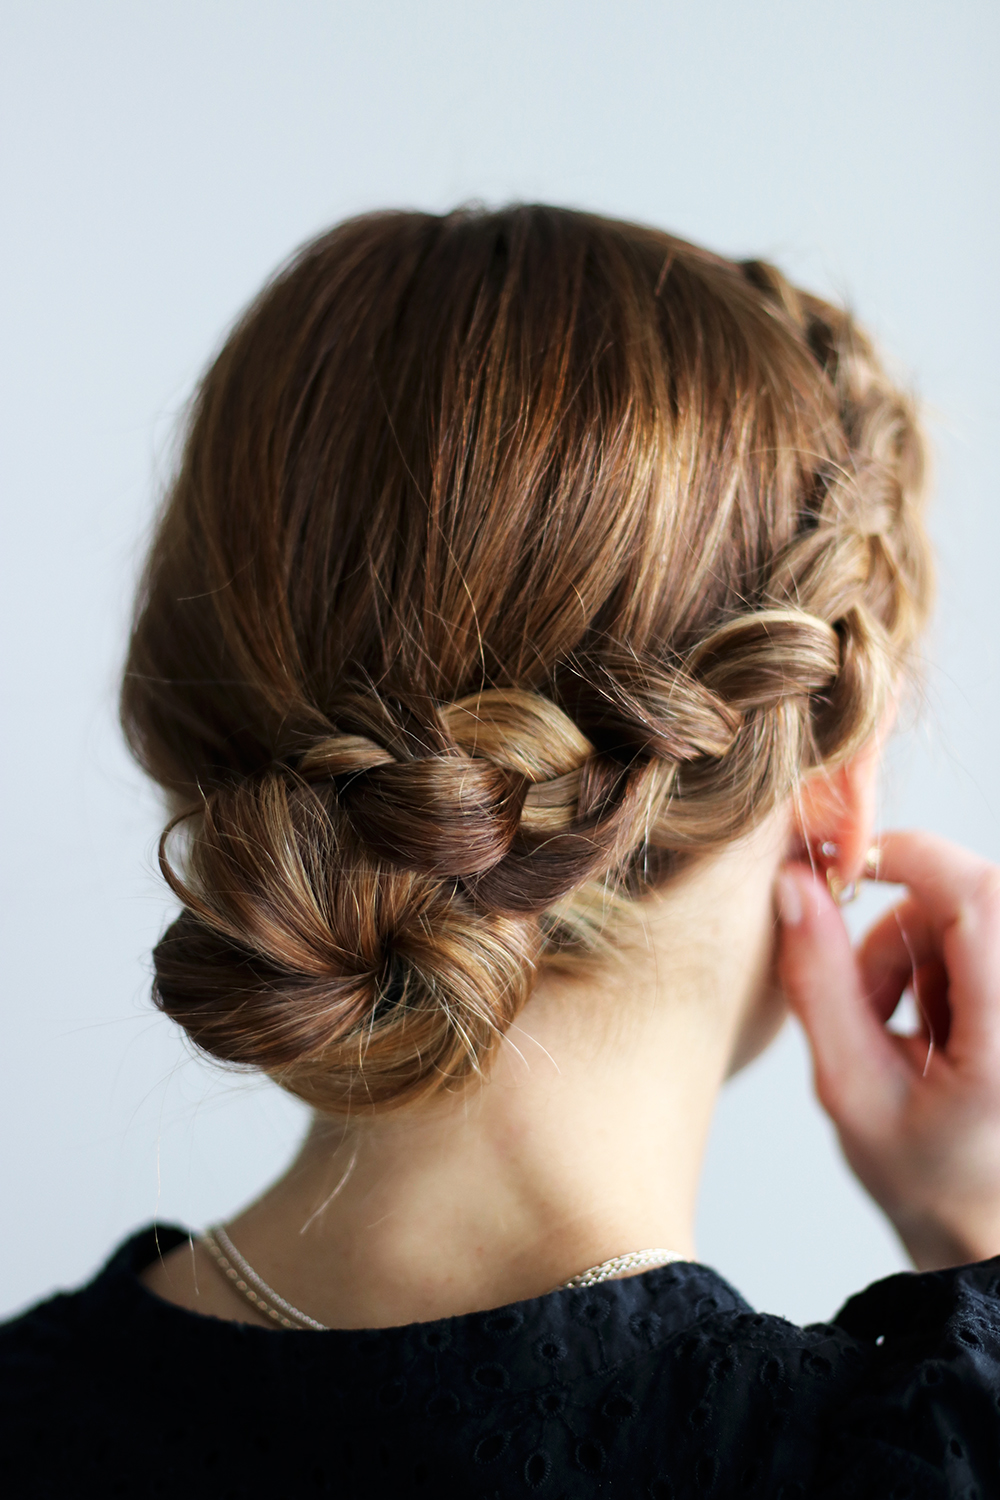 DIY File: Three Easy Bun Hairstyles for The Holidays - gaby burger